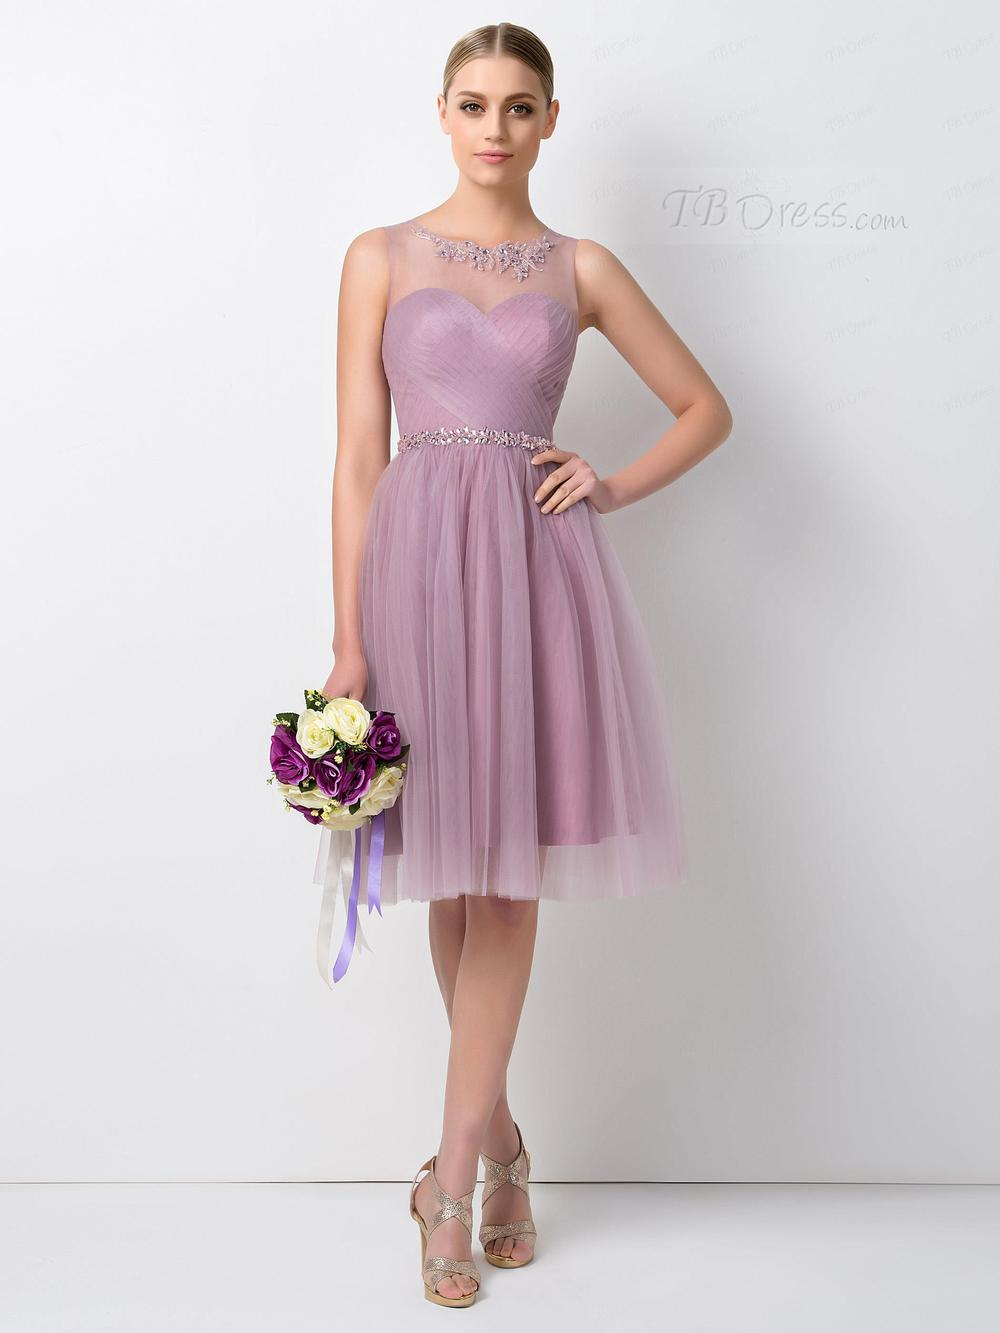 Fairy Bridesmaid Dresses